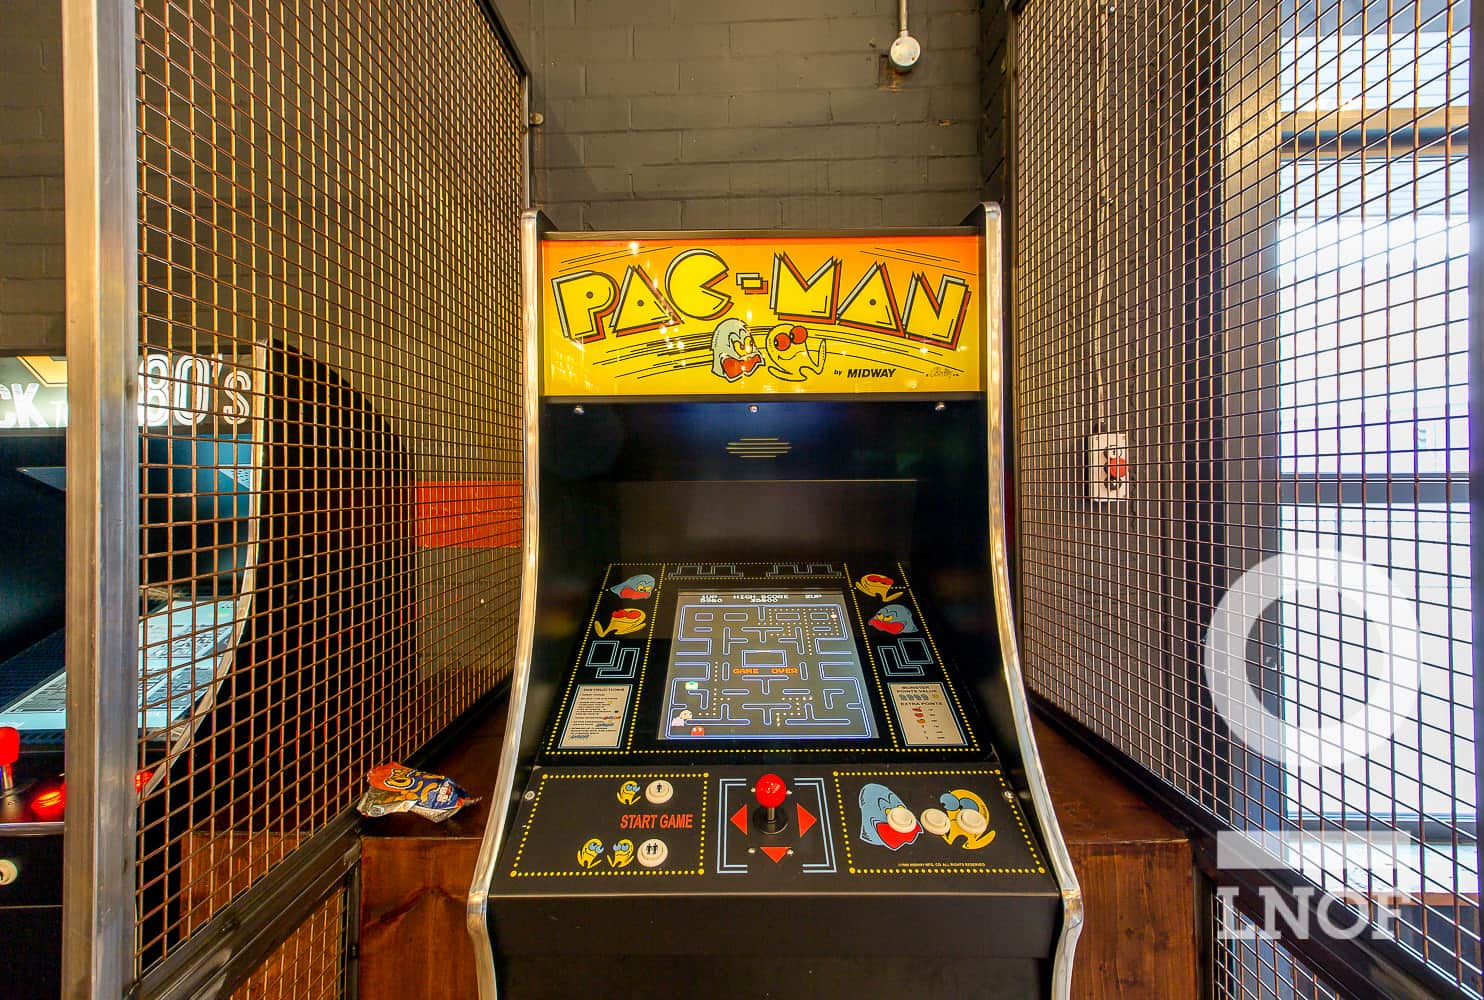 A vintage Pac-Man arcade machine